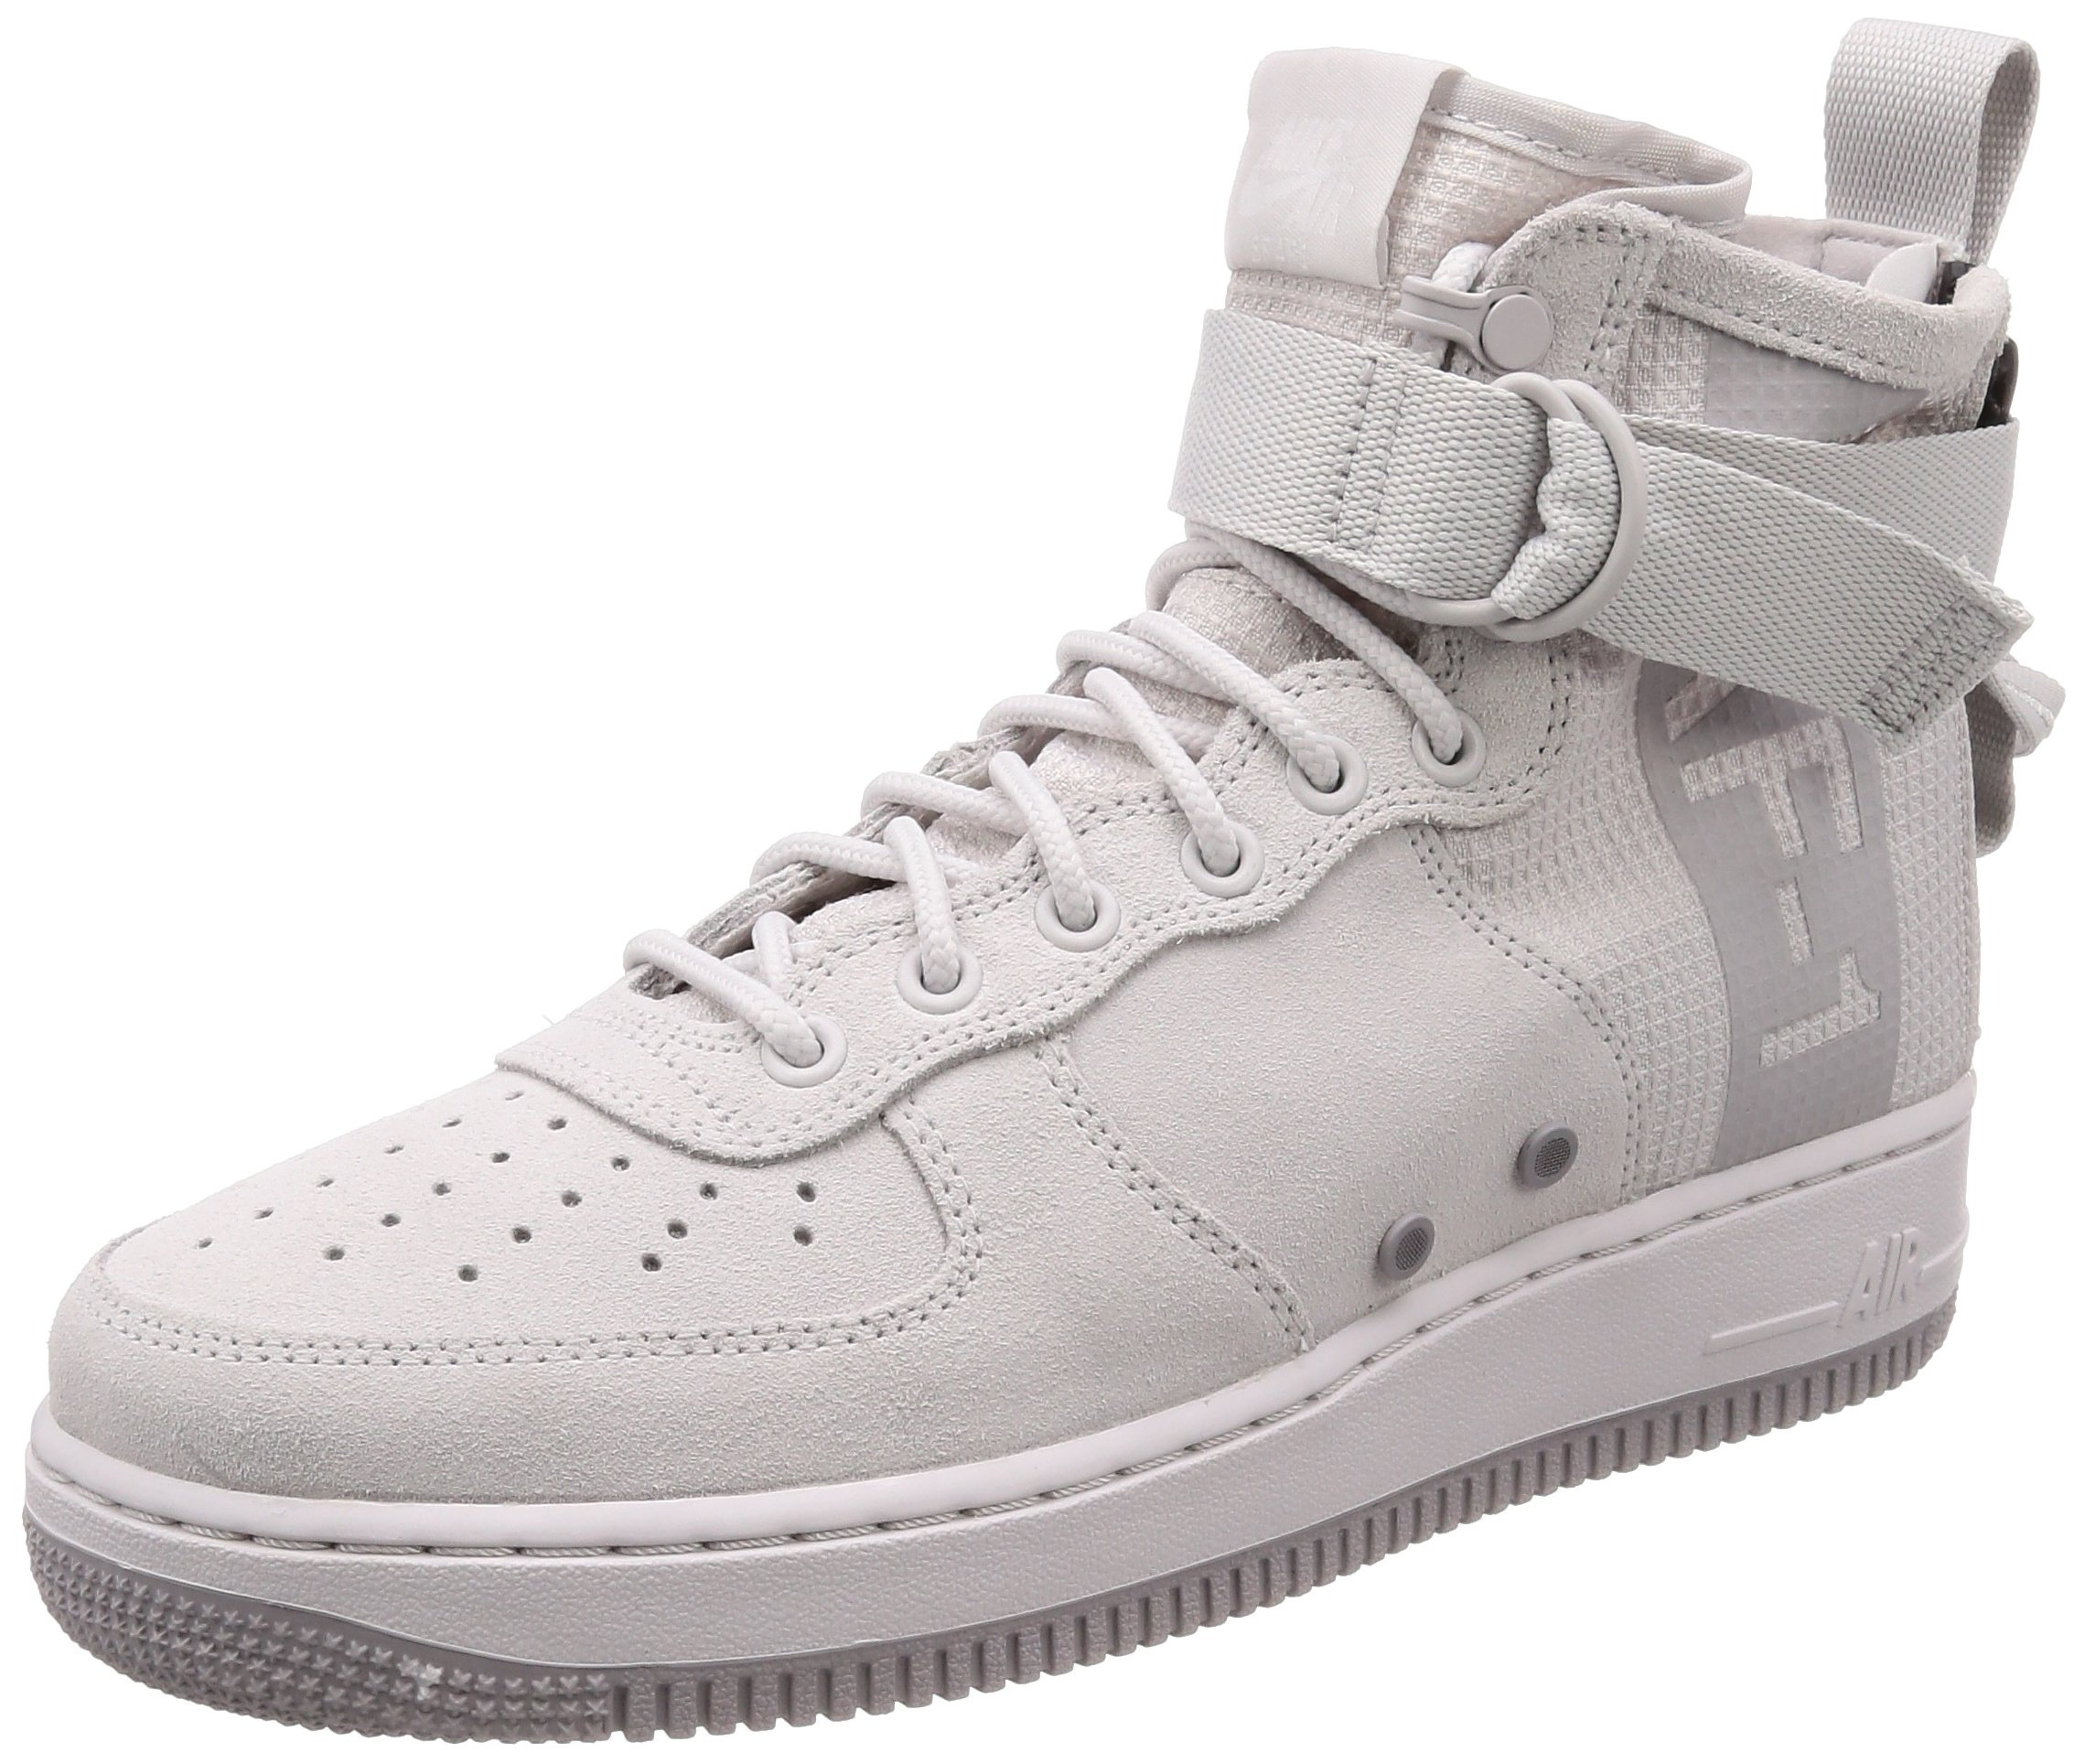 premium selection aa45a e51b7 Galleon - Nike SF Air Force 1 Mid 17 Men's Shoes Vast Grey ...